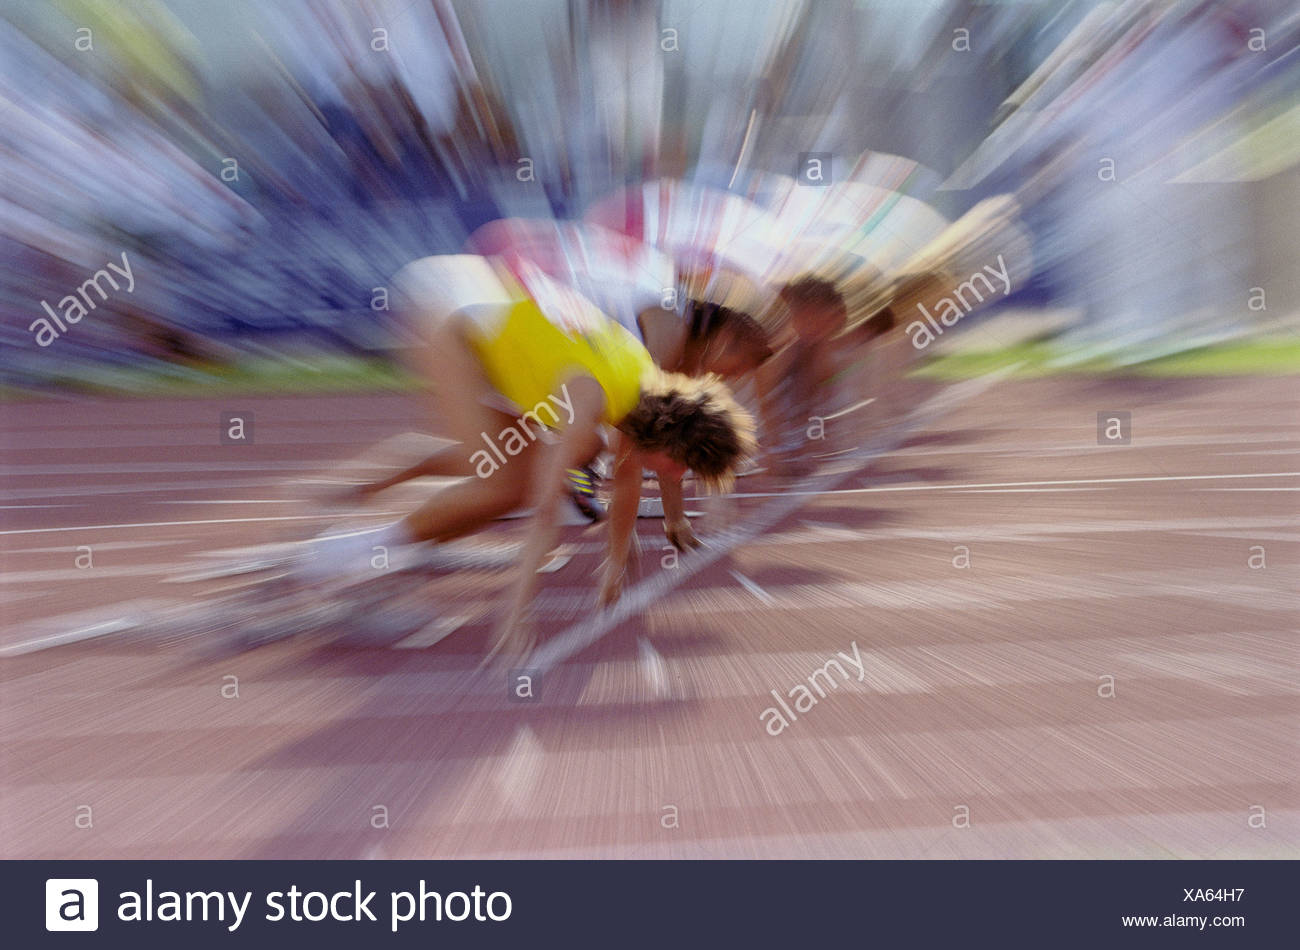 sport short distances run no model release athletes start phase zoom effect - Stock Image